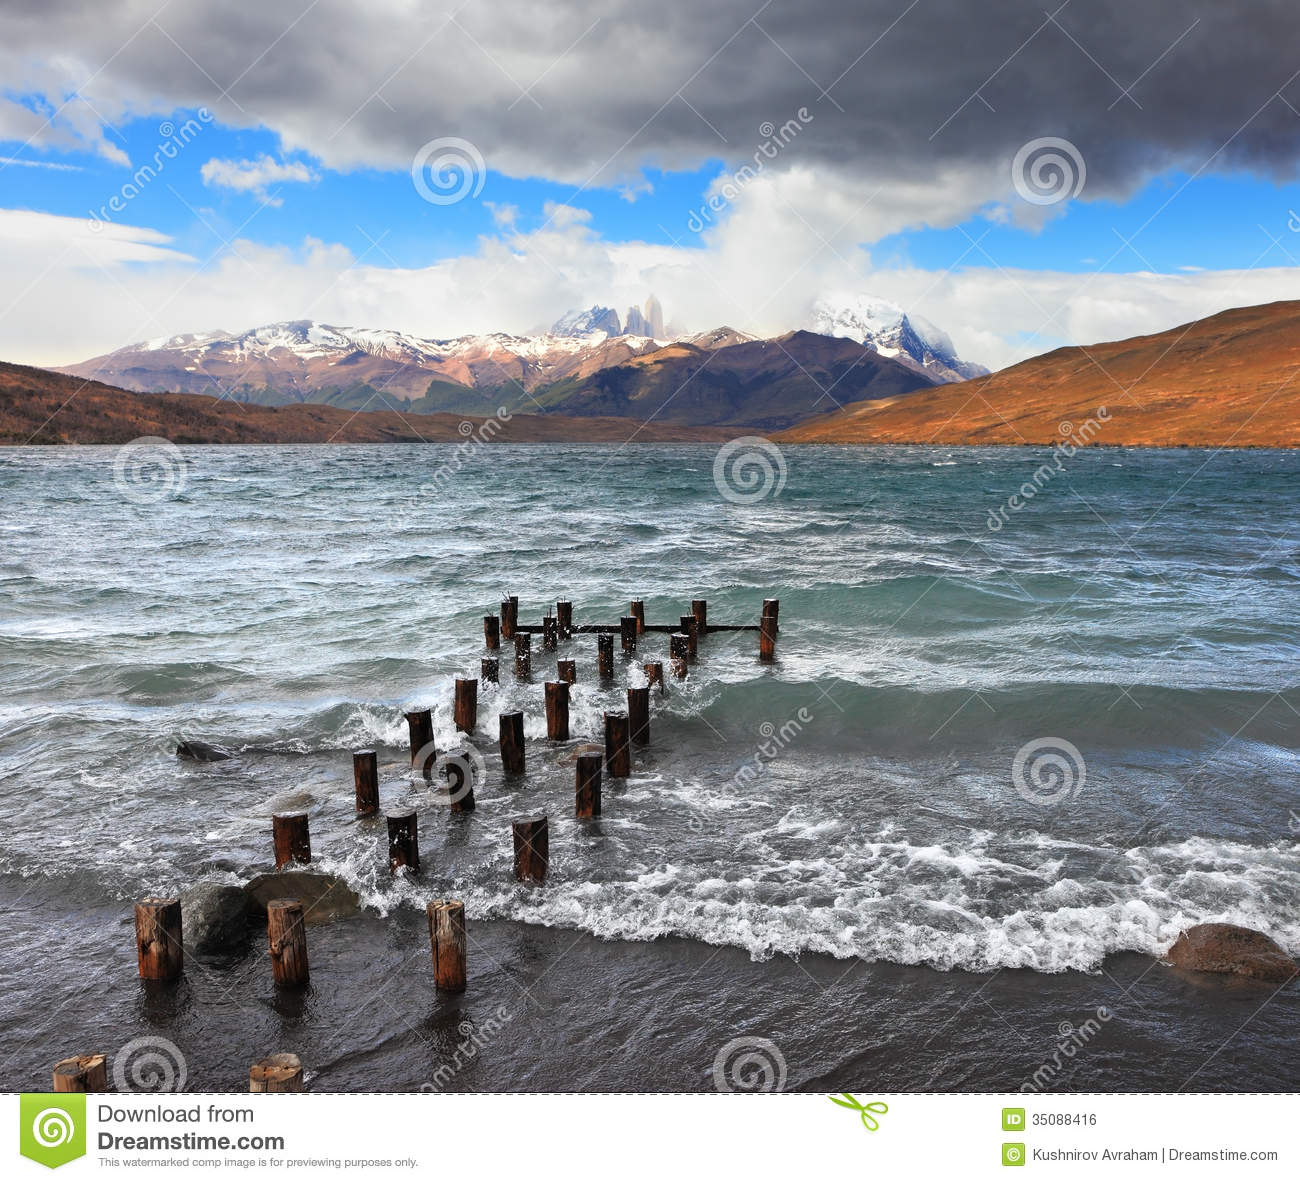 Patagonia South America >> The Wind And Waves At The Laguna Azul Royalty Free Stock Image - Image: 35088416